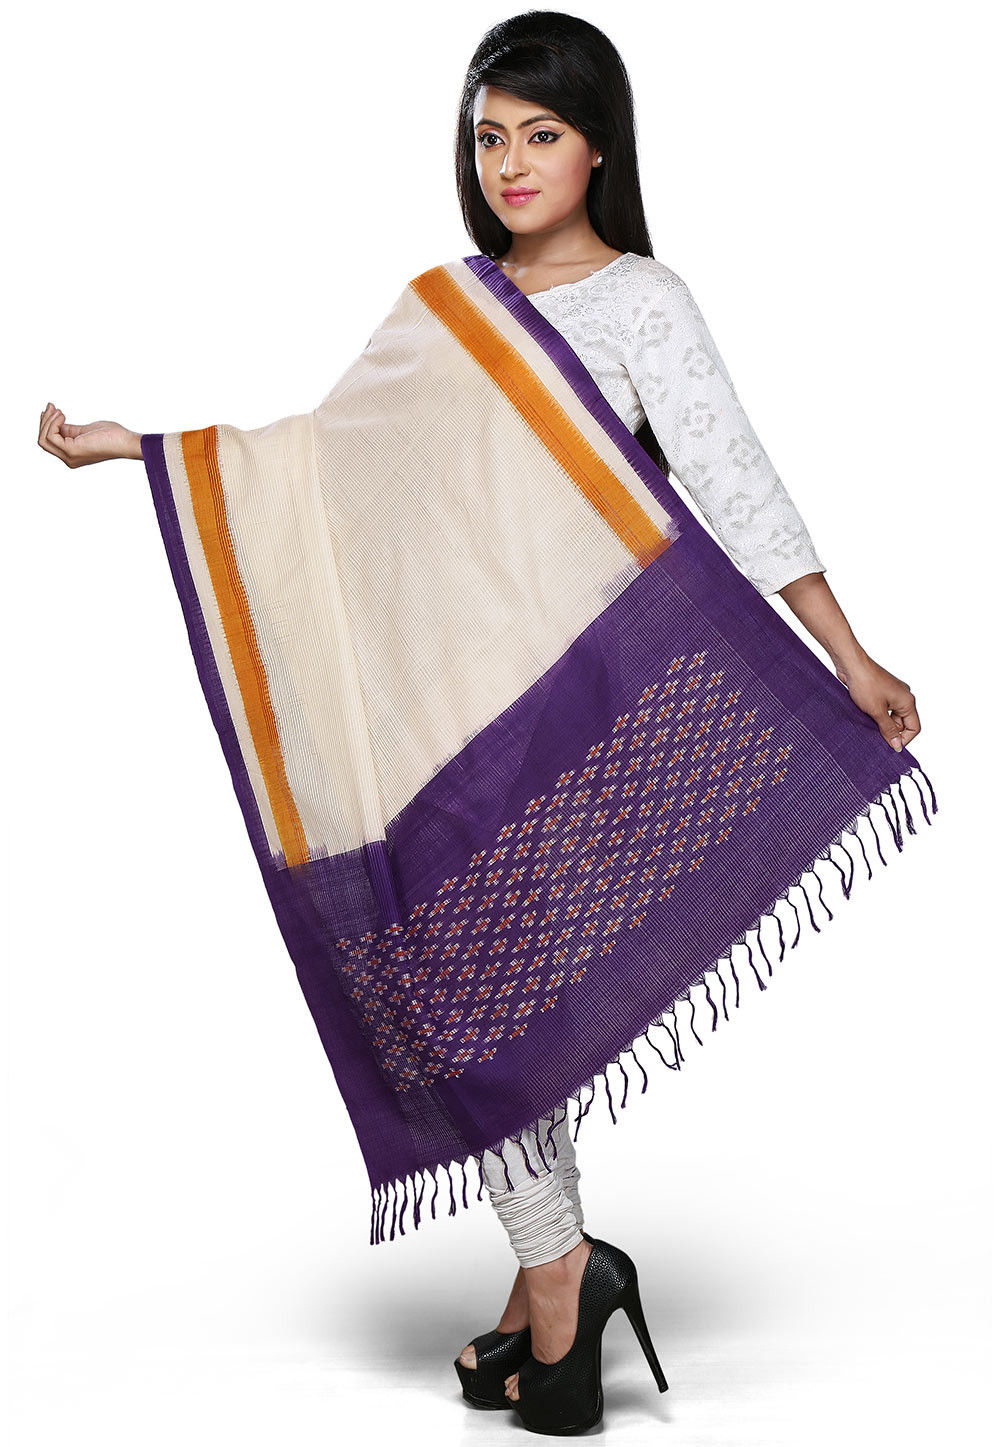 Handloom Cotton Dupatta In Violet and Off White